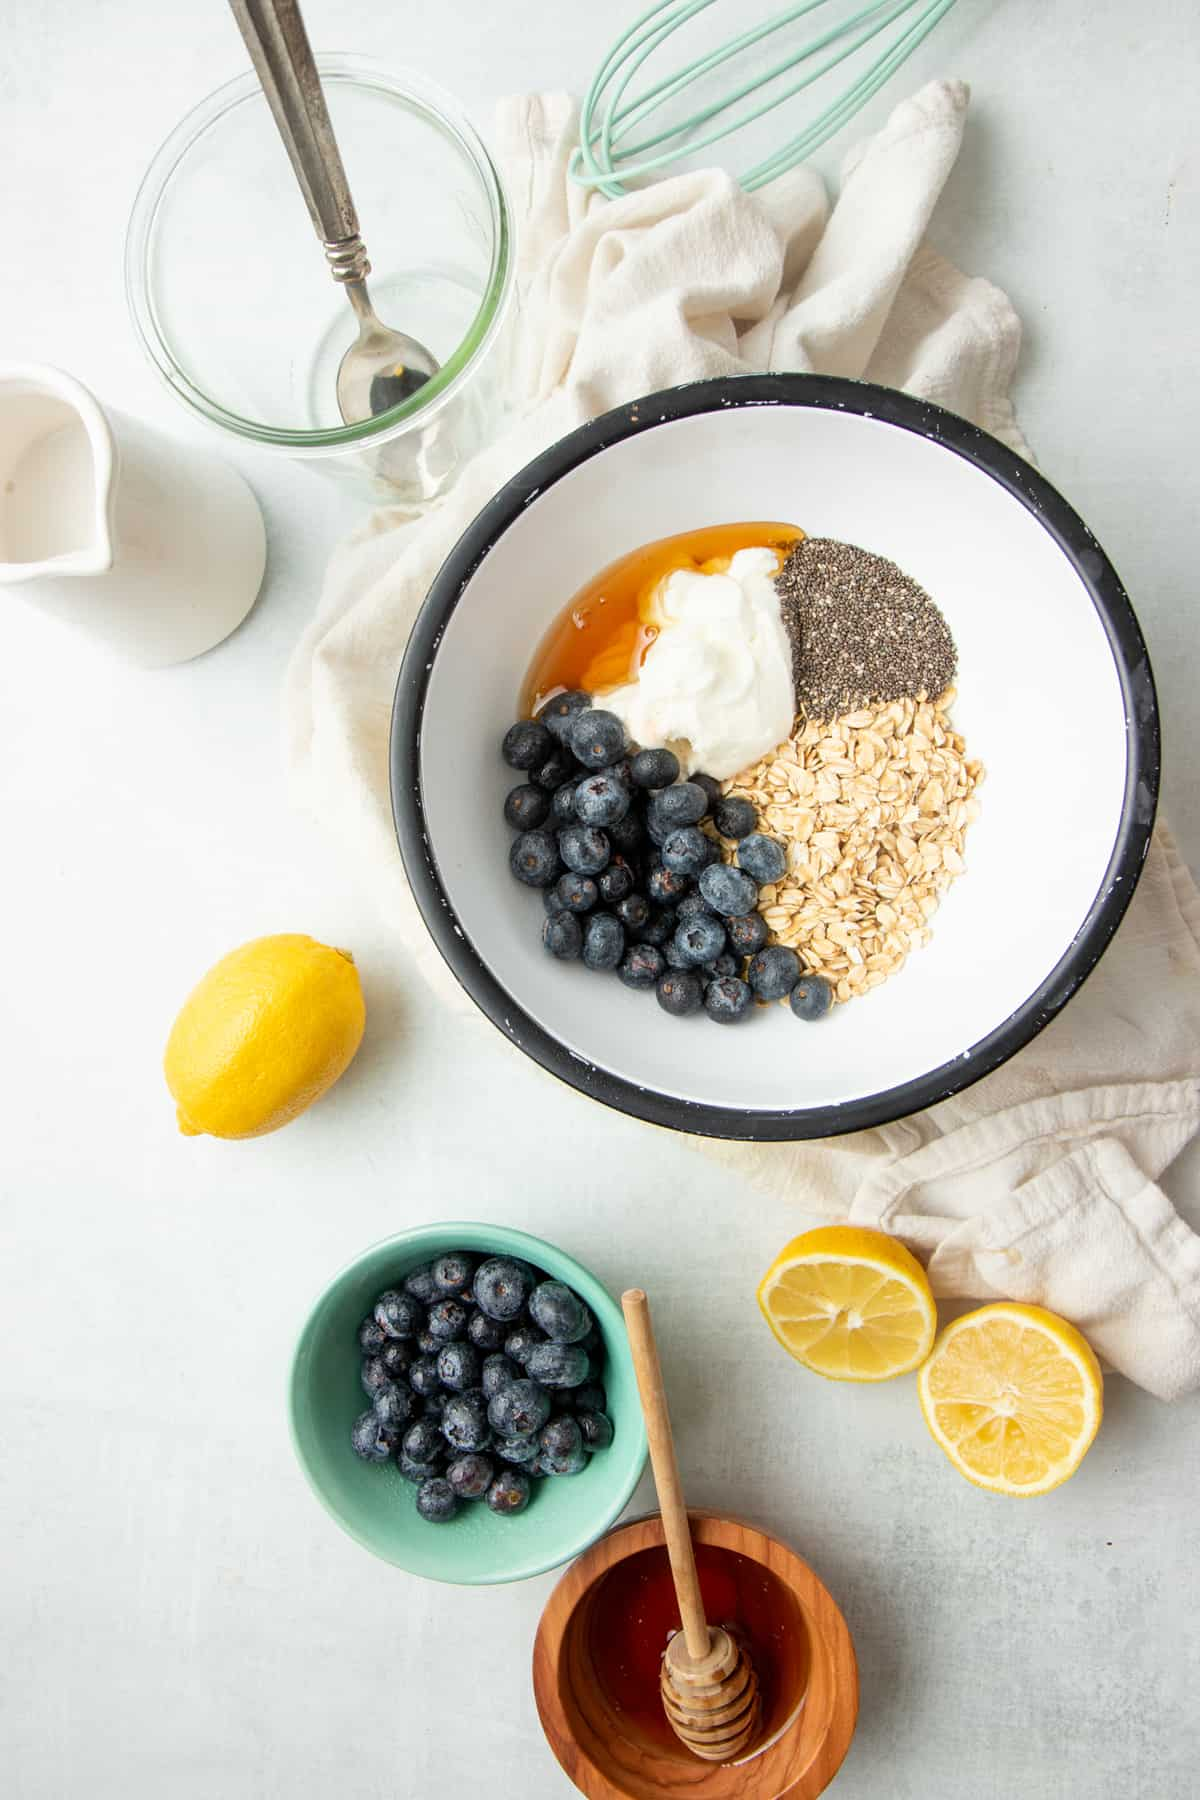 A mixing bowl filled with blueberries, oats, Greek yogurt, chia seeds, and other ingredients sits next to a halved lemon.